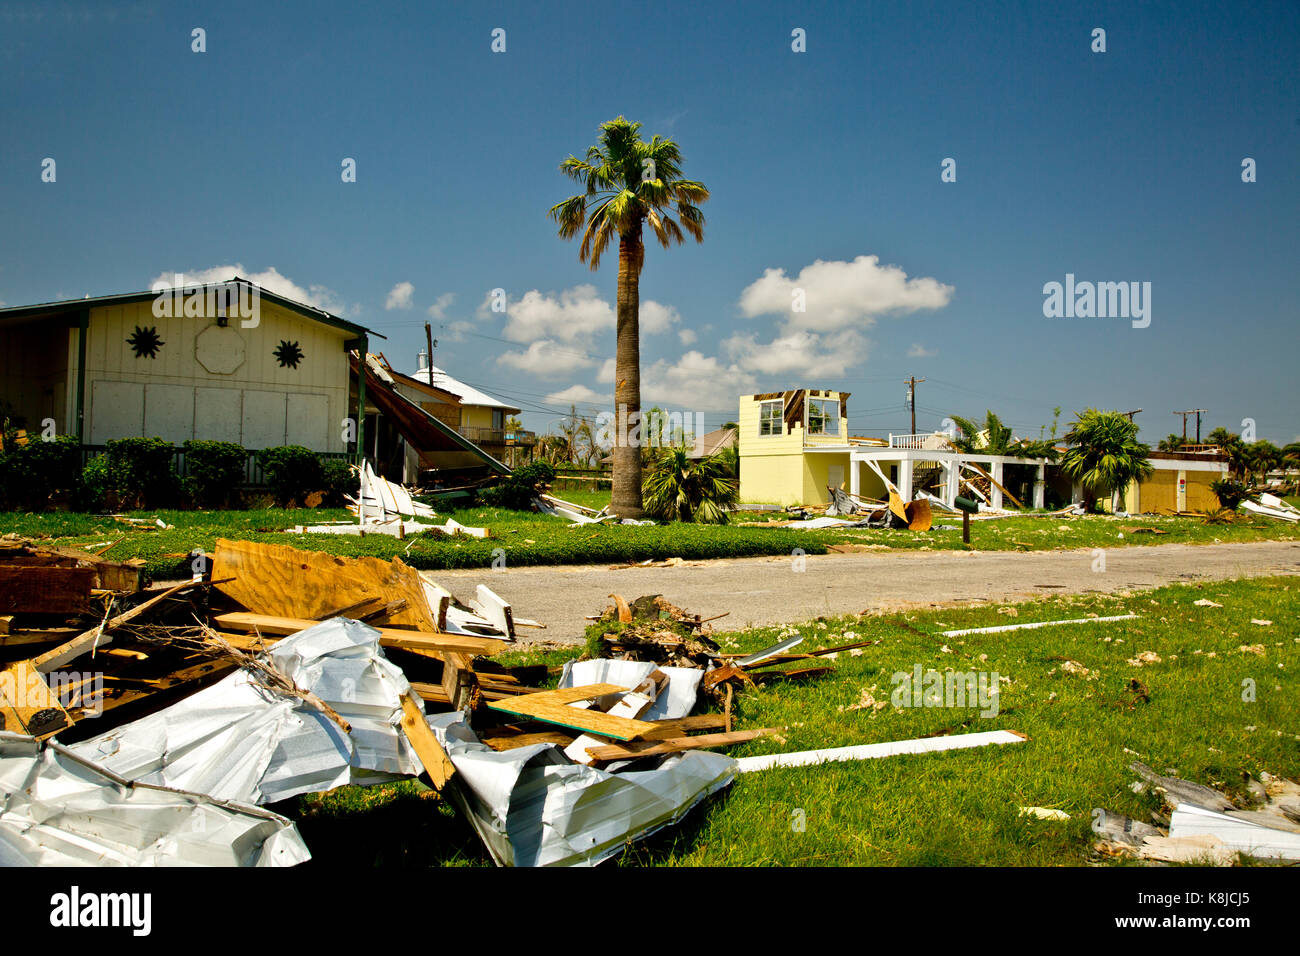 Buildings and homes destroyed by Hurricane Harvey in Rockport or Fulton, Texas - Stock Image